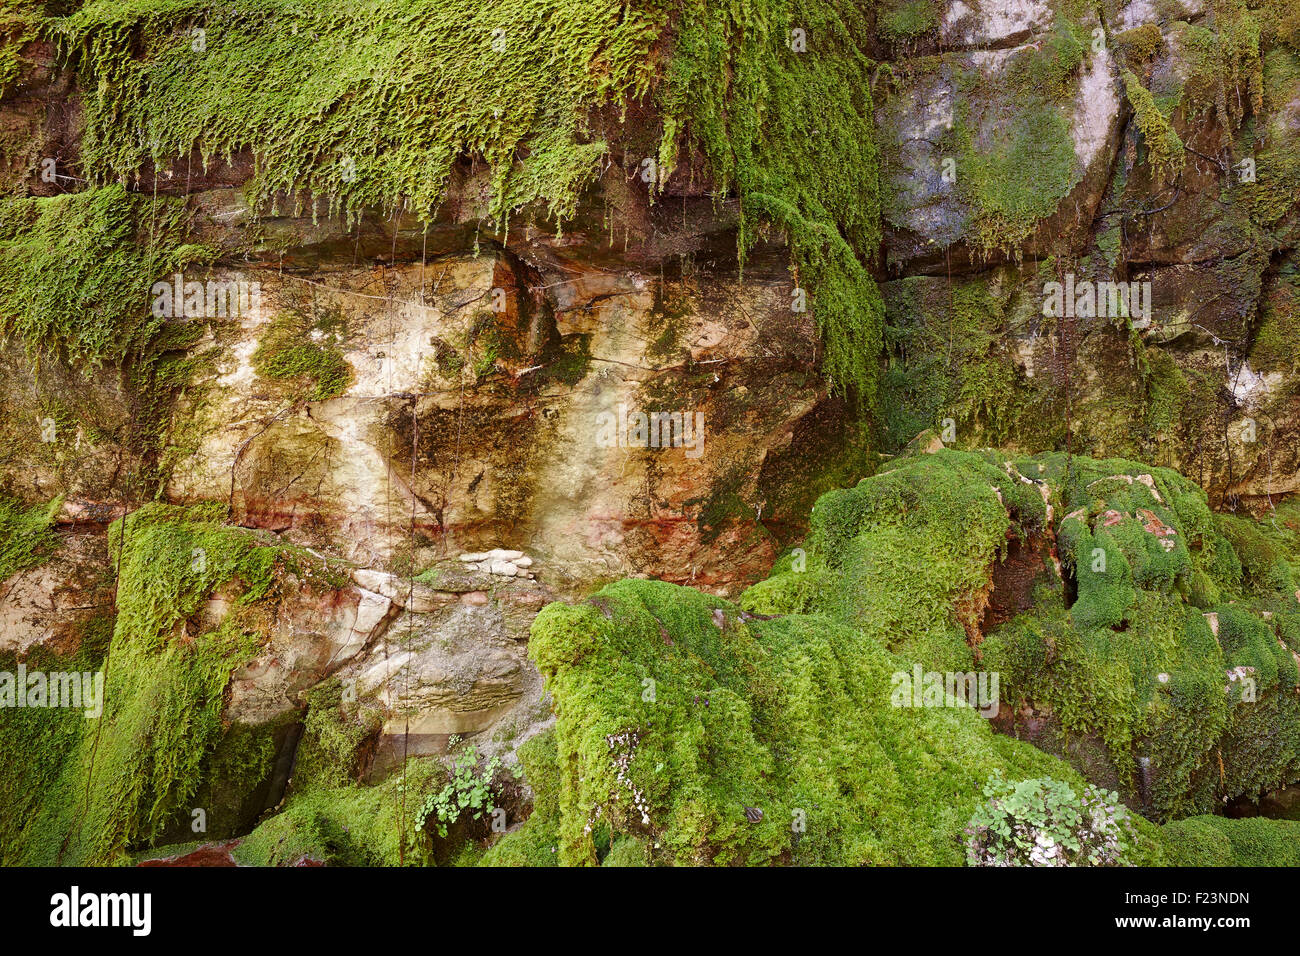 Moss grows on sandstone cliffs in a sheltered area of the Carnarvon Gorge. SE Queensland, Australia - Stock Image